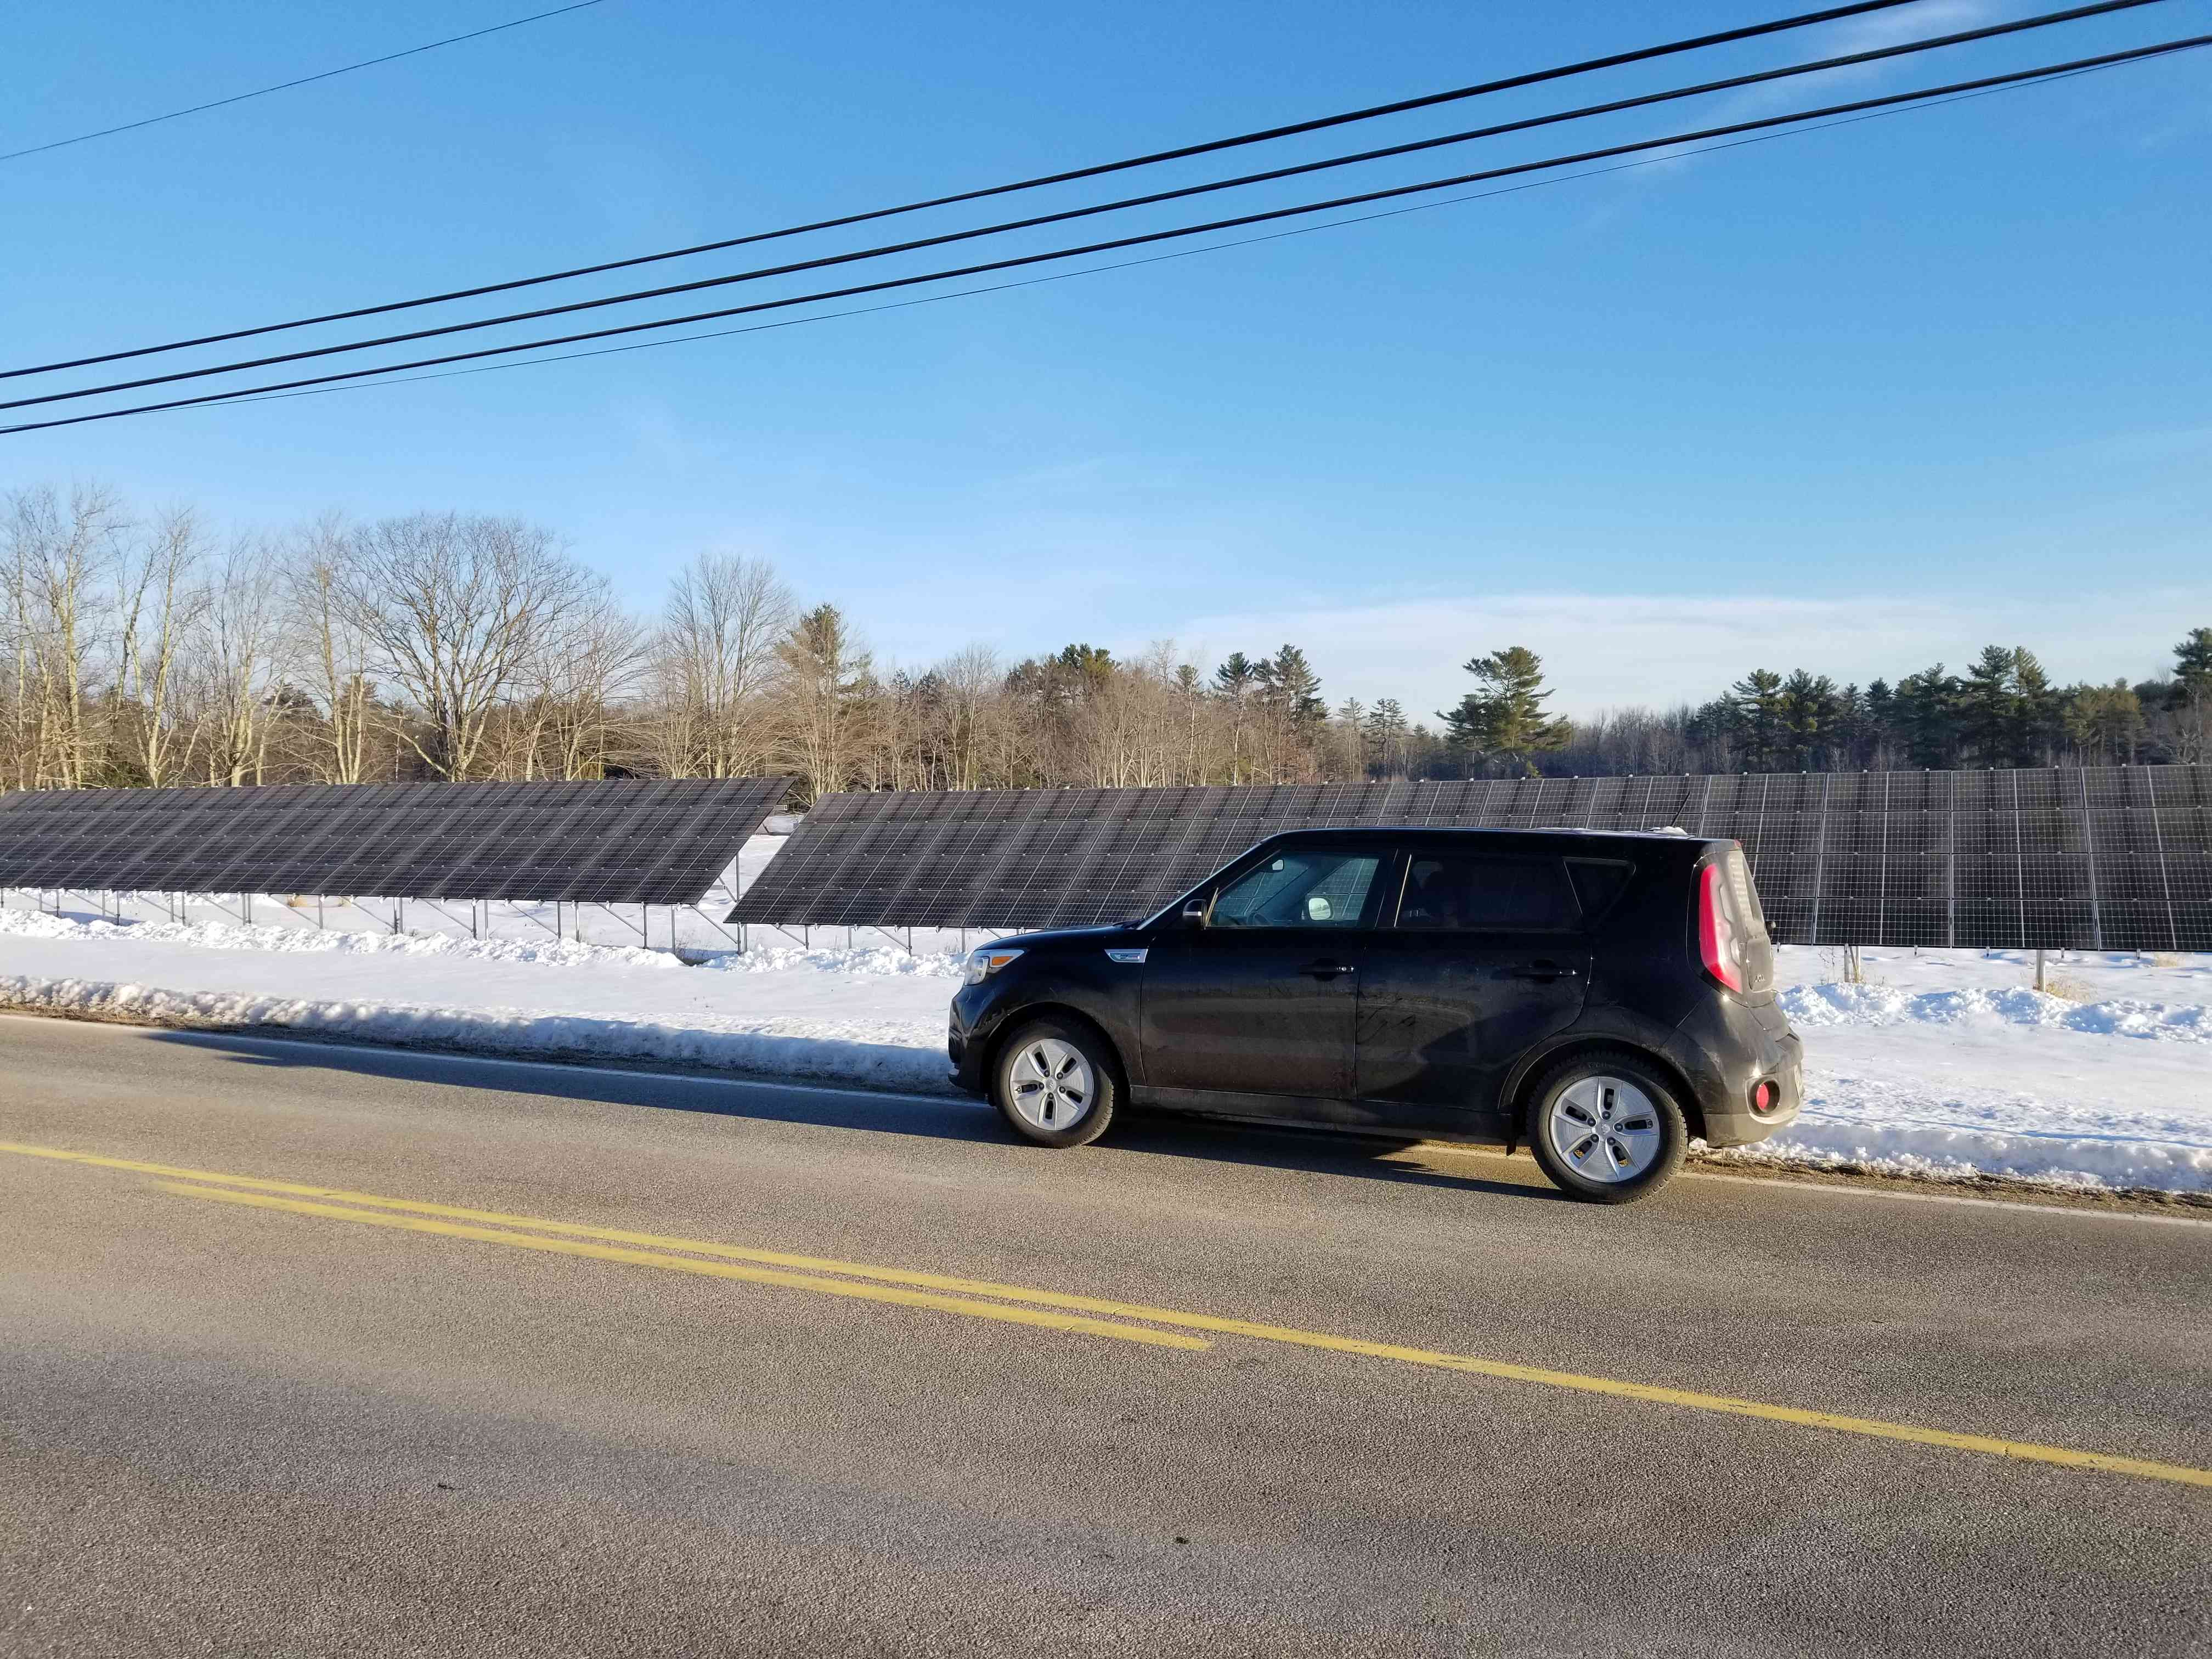 Electric Kia Soul in front of solar panels